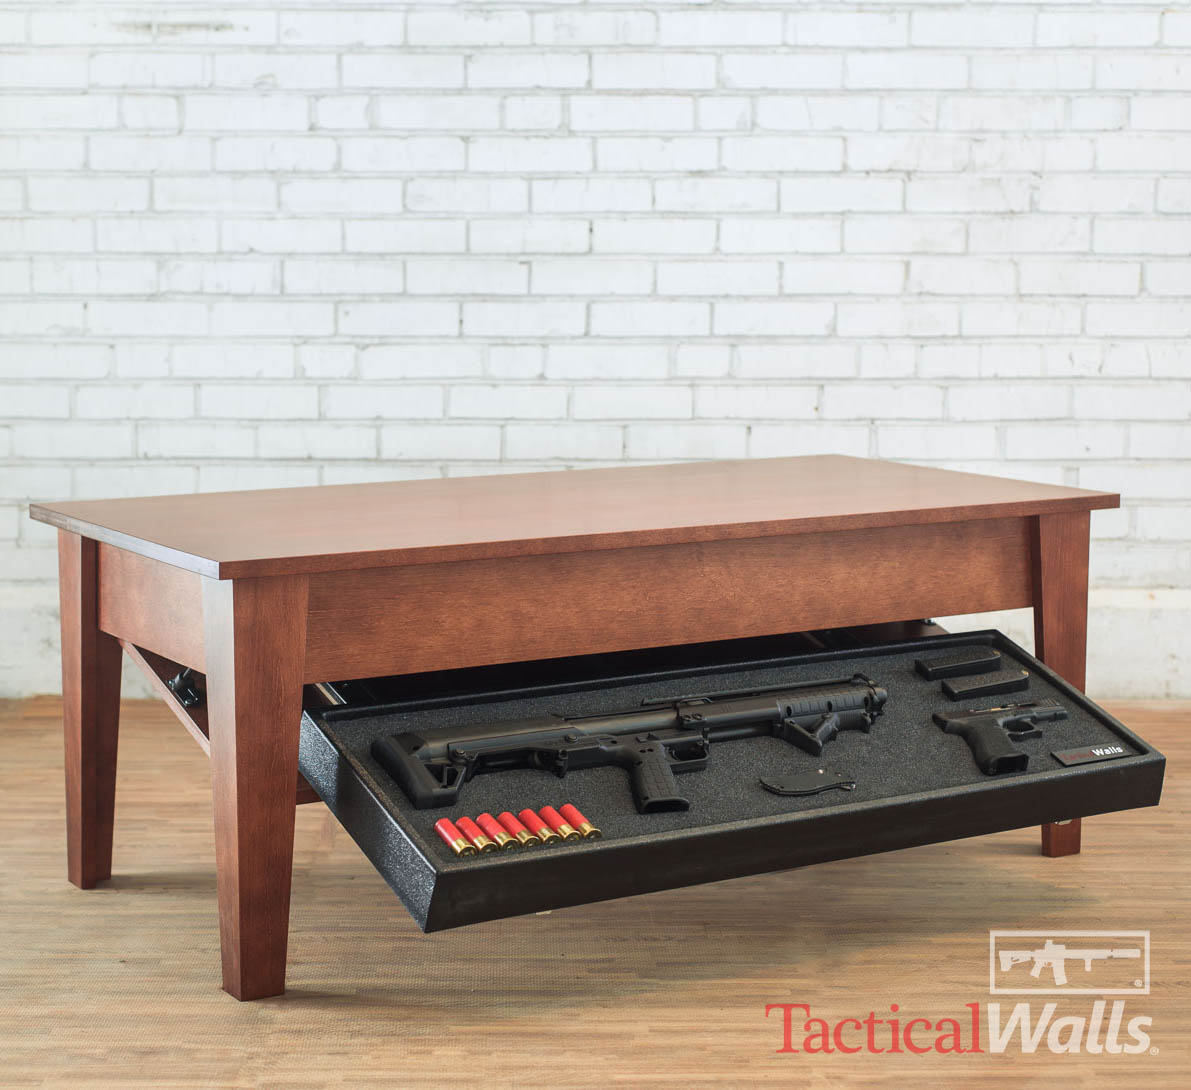 Brilliant Tactical Walls Concealment Coffee Table Rfid Lock Onthecornerstone Fun Painted Chair Ideas Images Onthecornerstoneorg